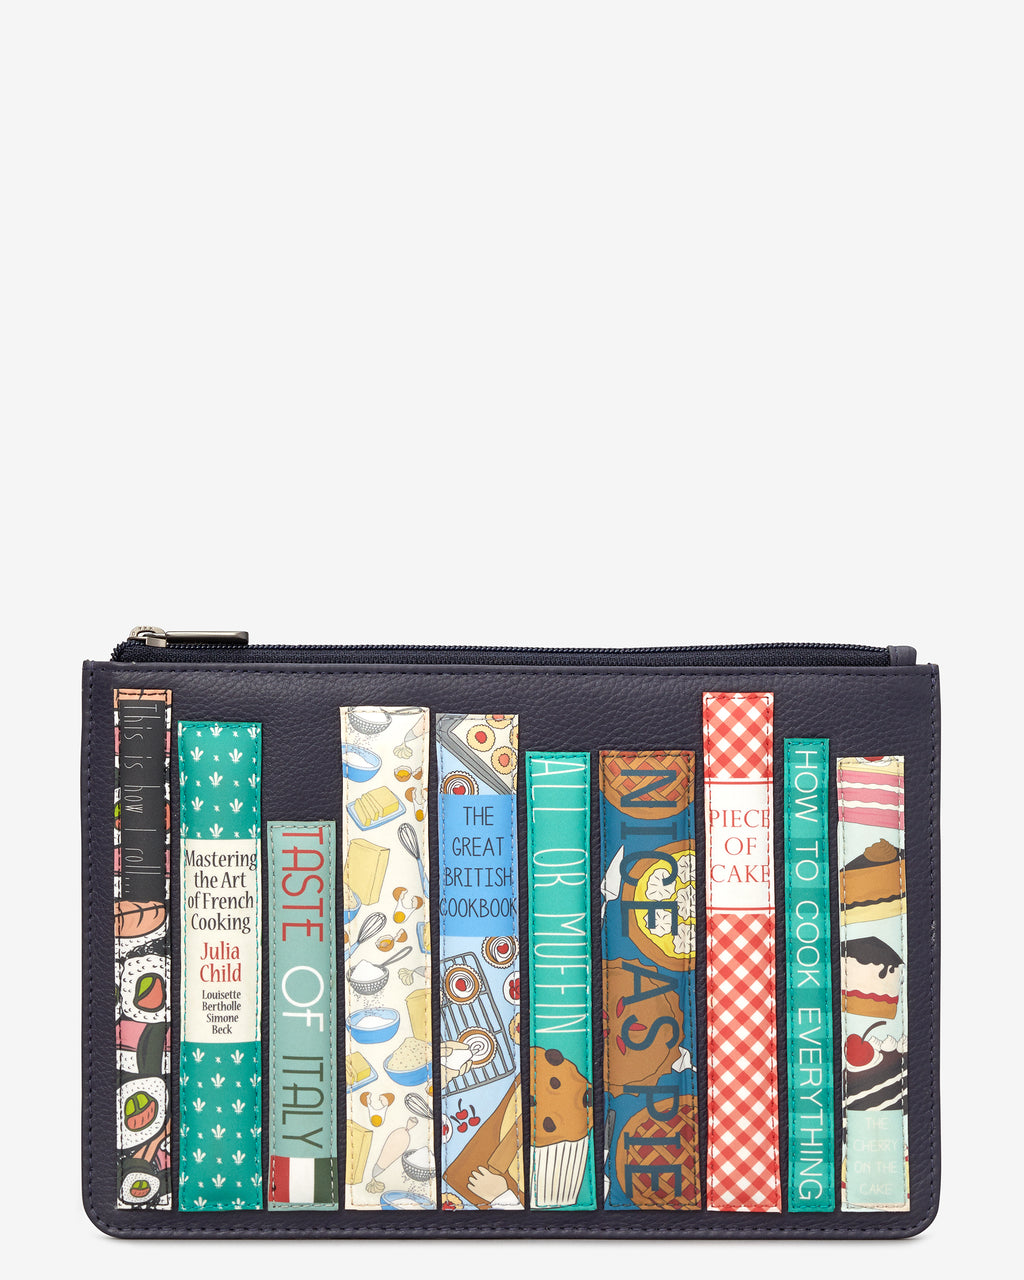 Cook Bookworm Library Zip Top Leather Pouch